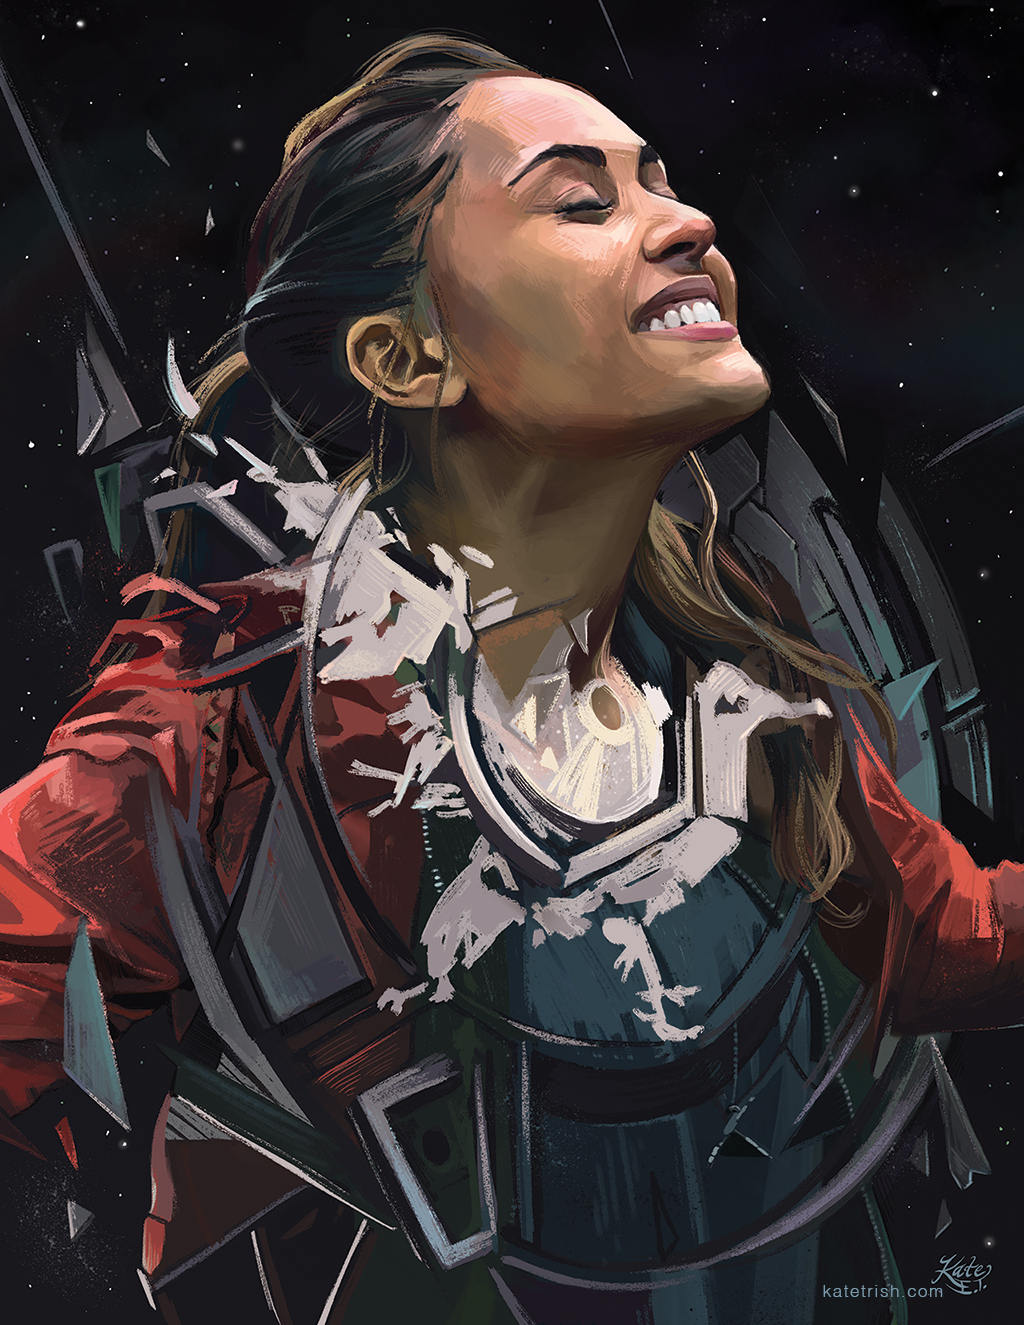 My portrait of Lindsey Morgan as Raven Reyes (The 100), auctioned at Unity Days 2018 to benefit Pancreatic Cancer Action Network